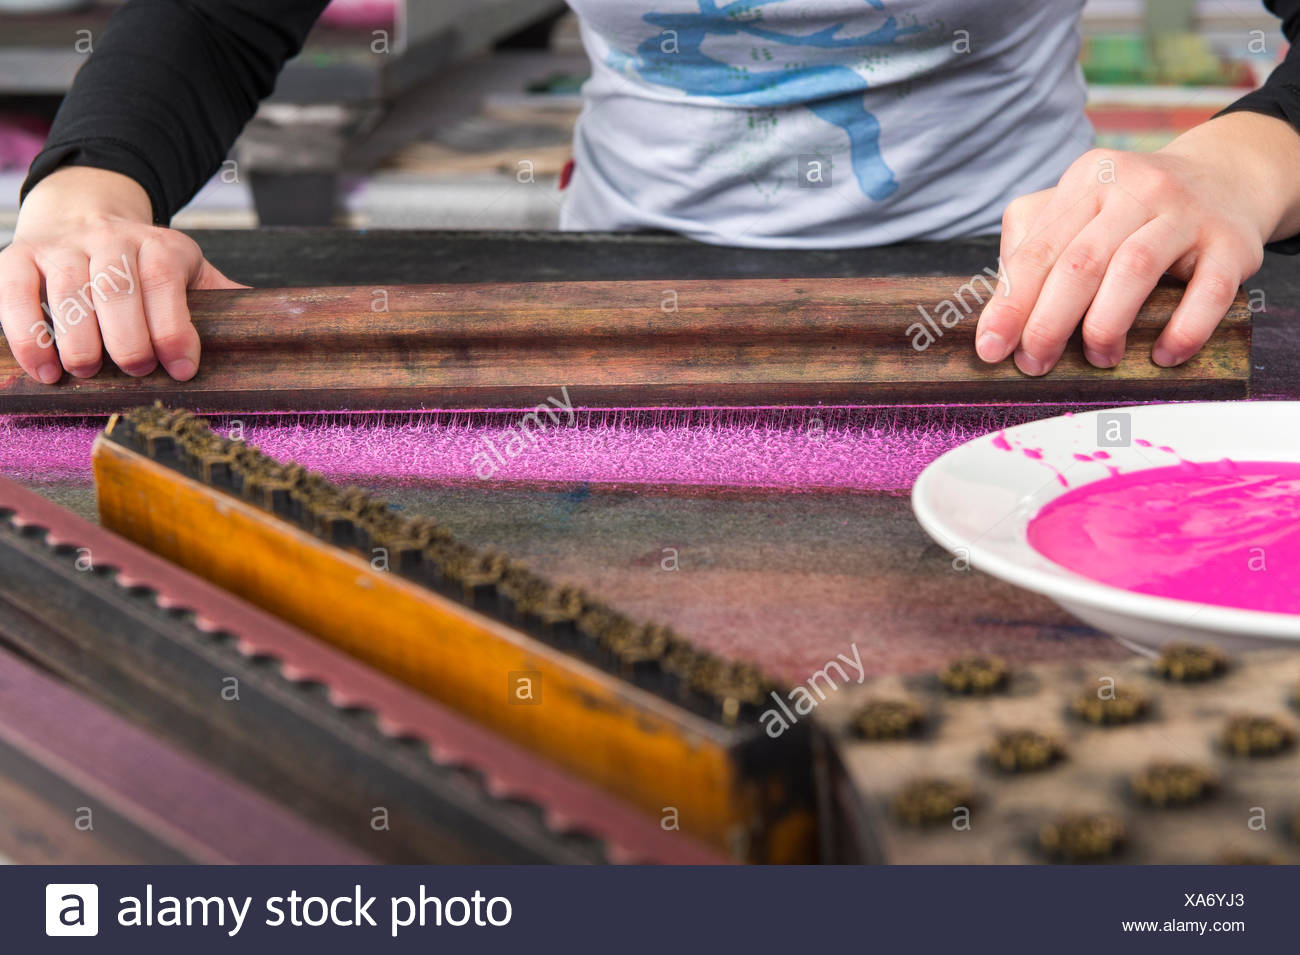 Block printing, hands pressing woodblock on color on felt mat, woodblock and plate with color in front, Bad Aussee, Styria - Stock Image